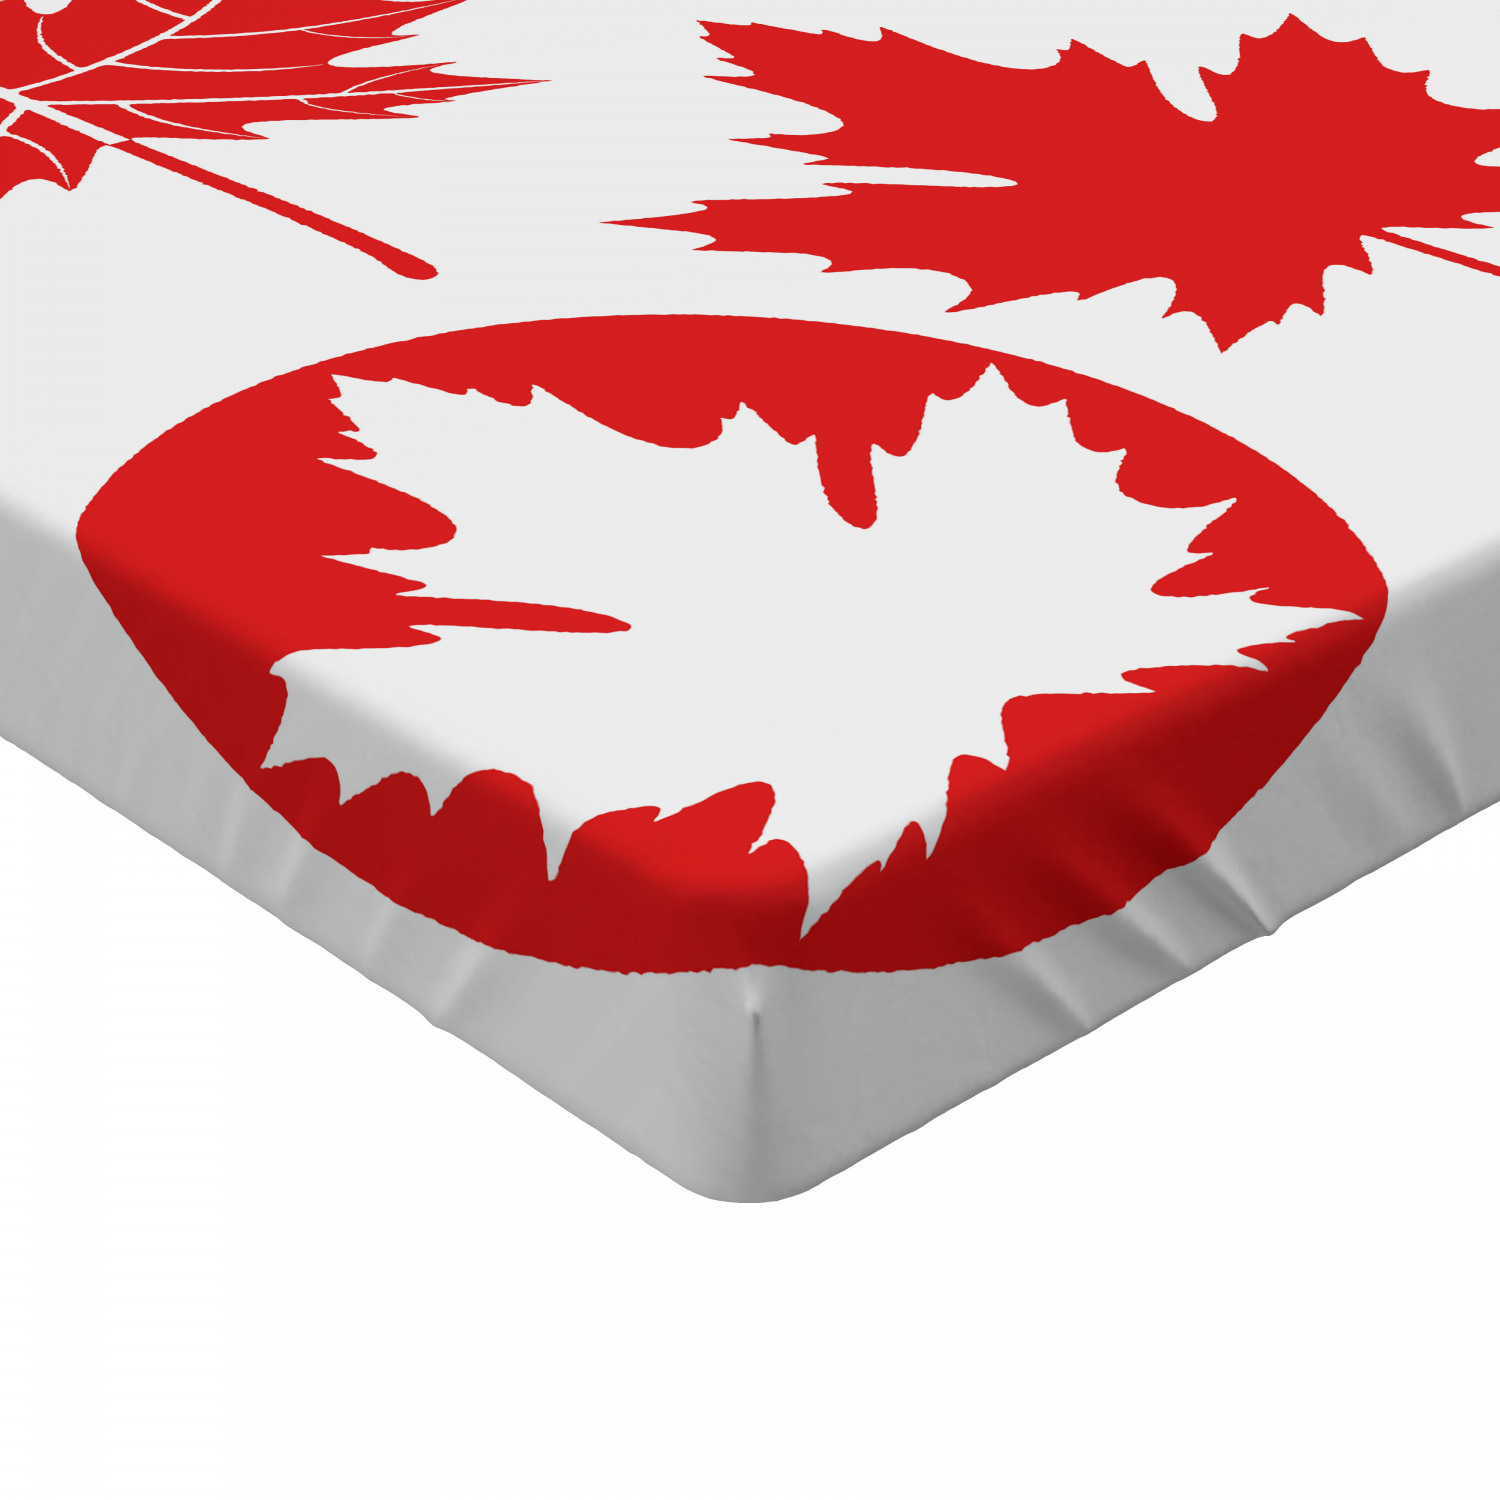 Maple Tree Fitted Sheet Cover with All-Round Elastic Pocket in 4 Sizes